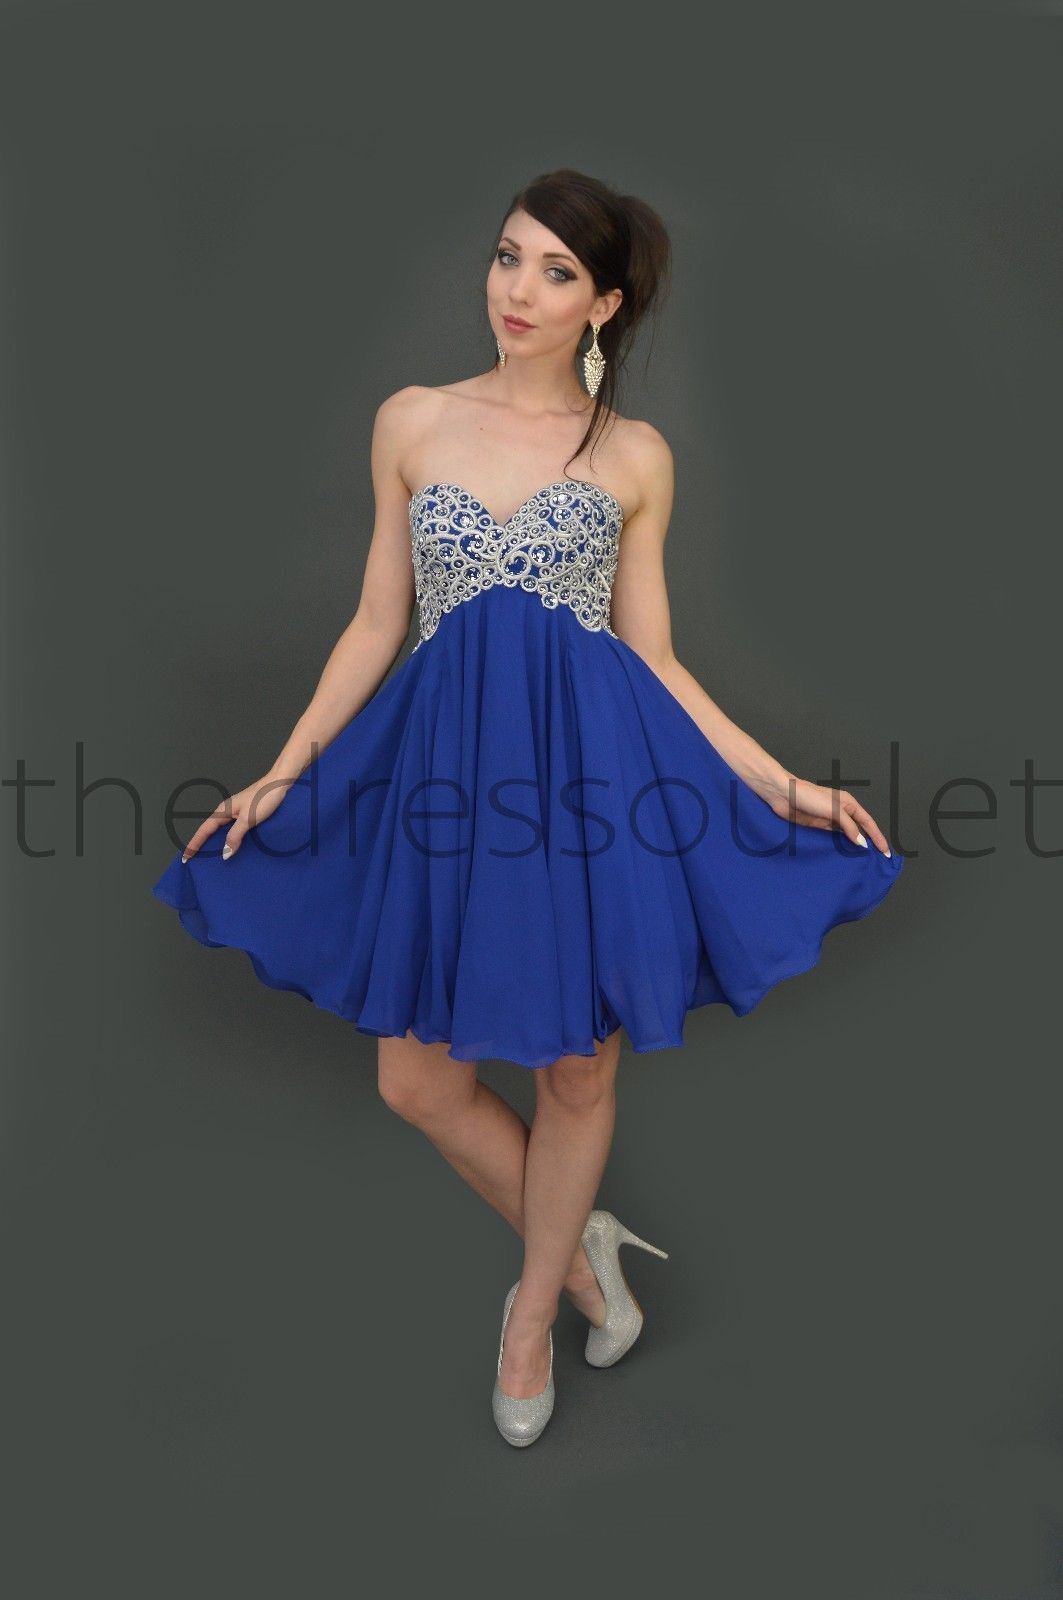 Short prom dress plus size homecoming formal cocktail dress